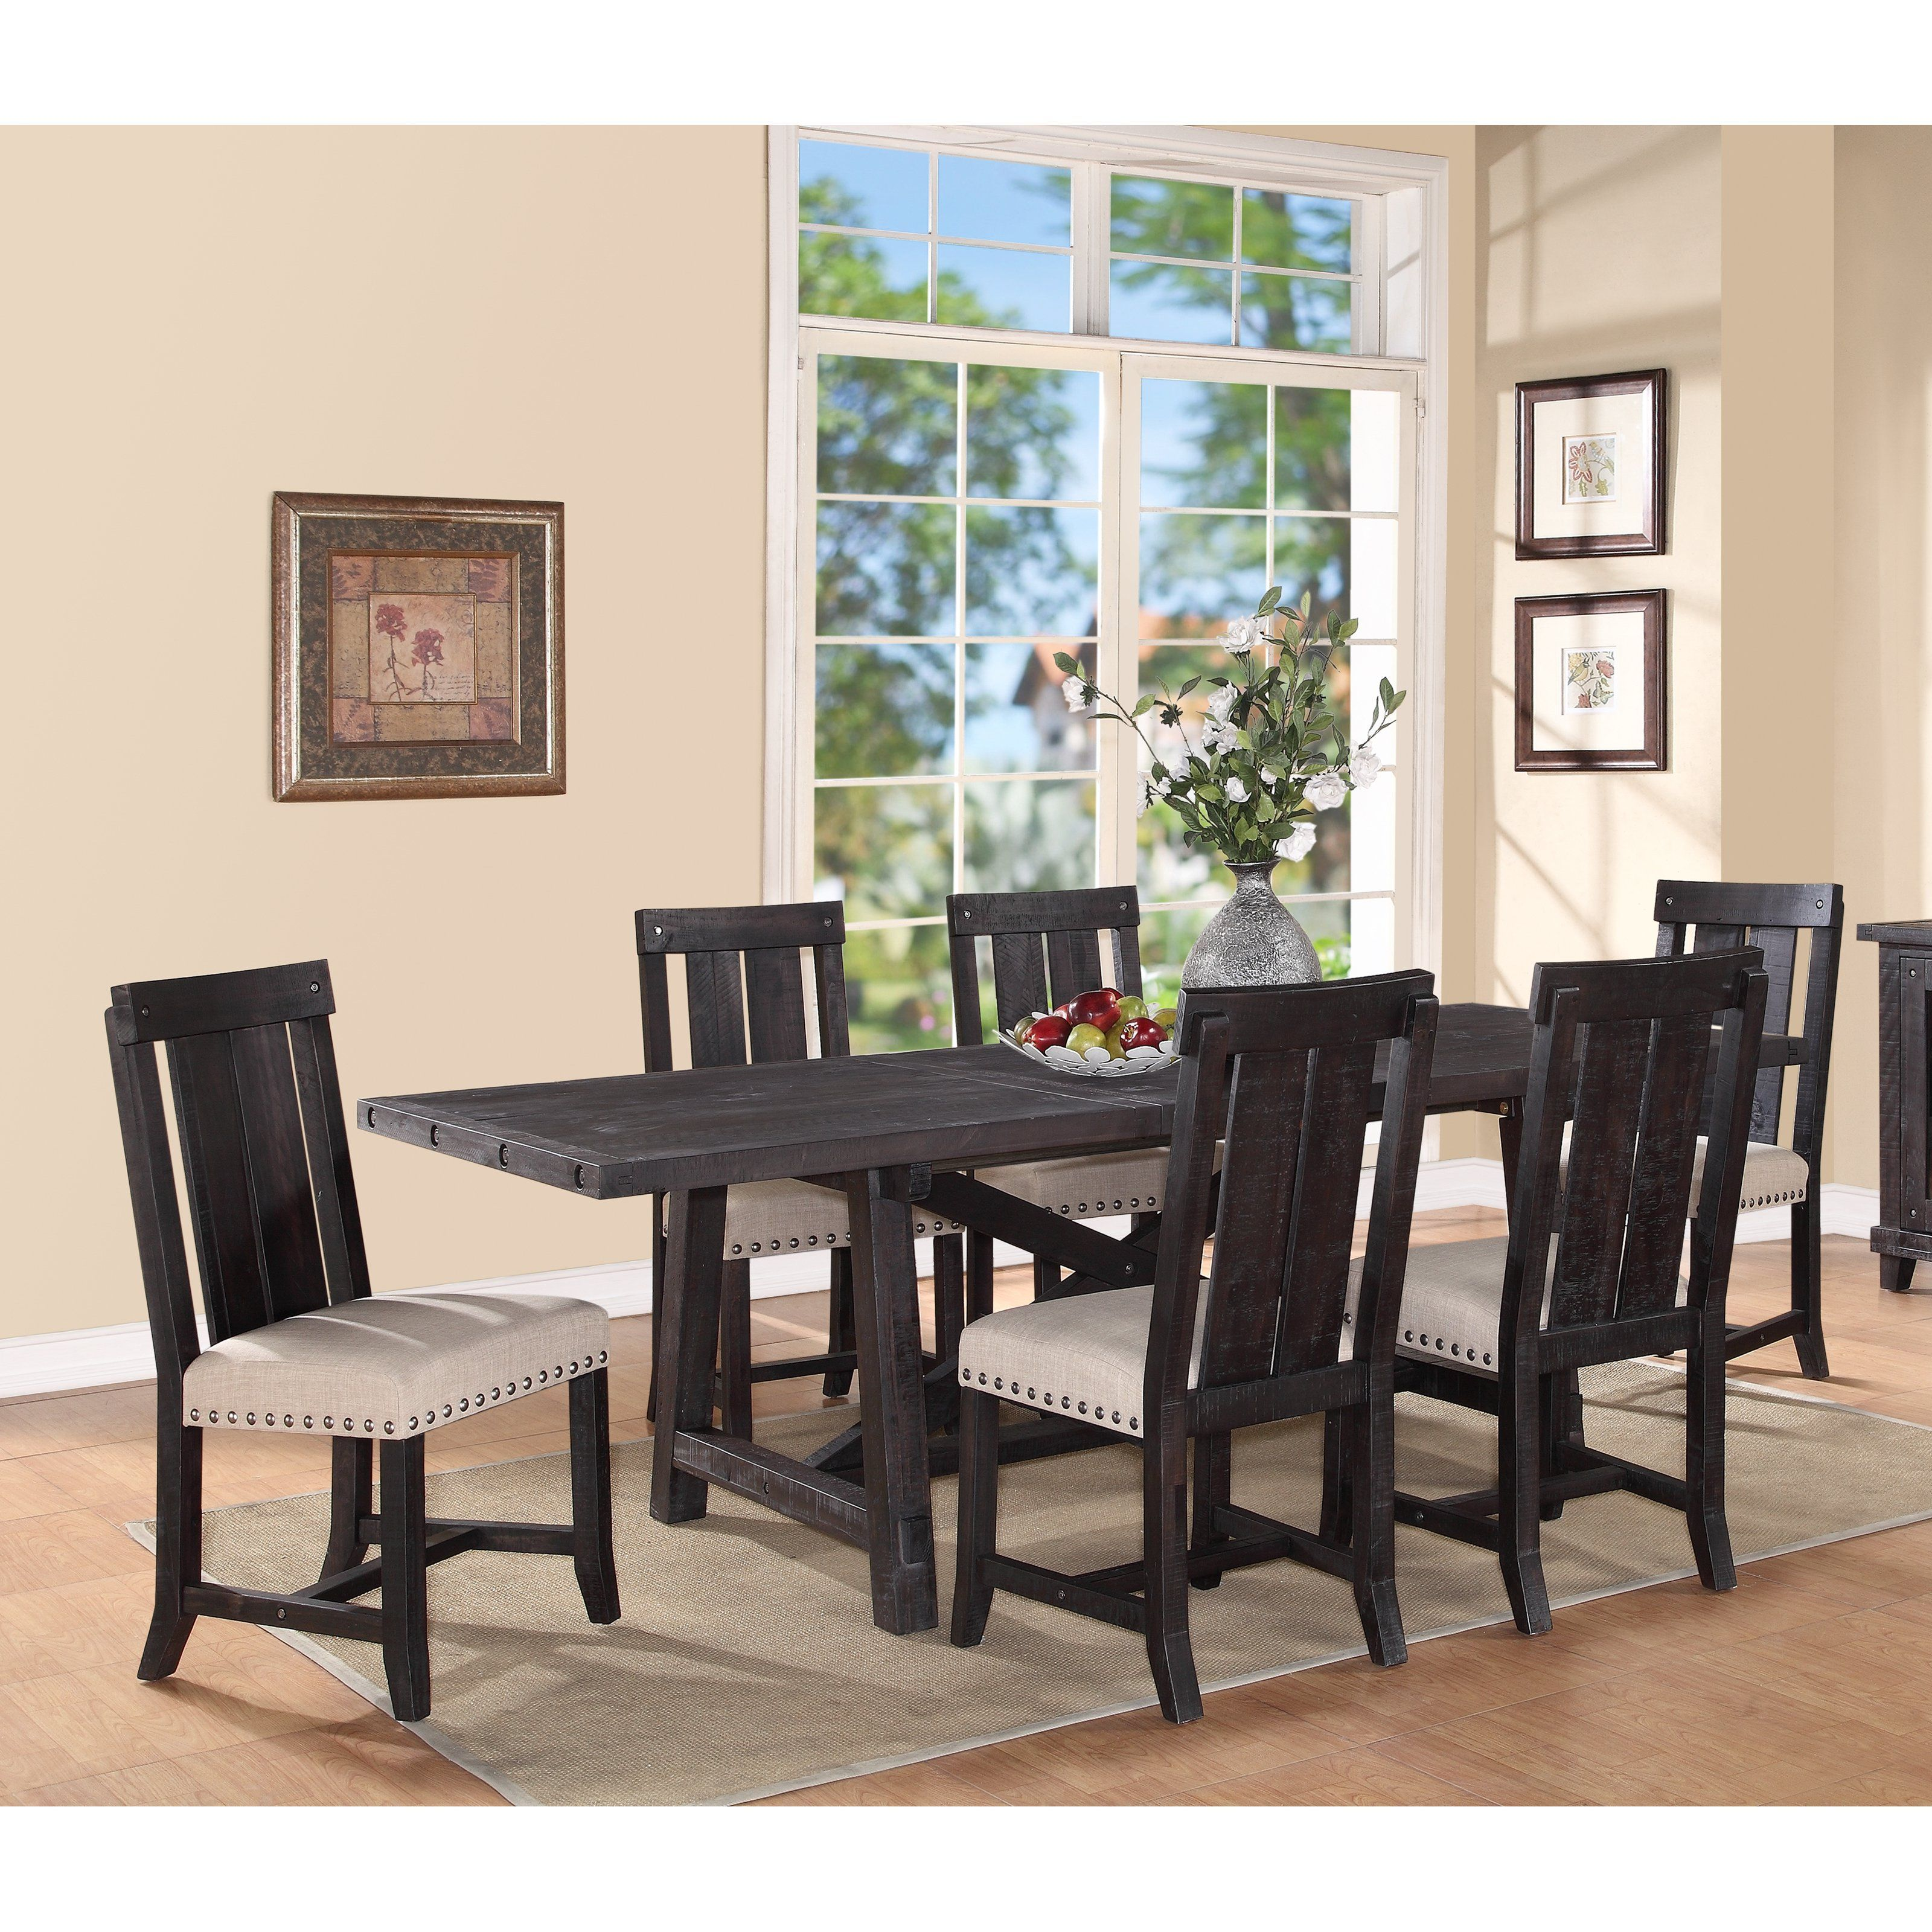 Modus Yosemite 7 Piece Rectangular Dining Table Set With Wood